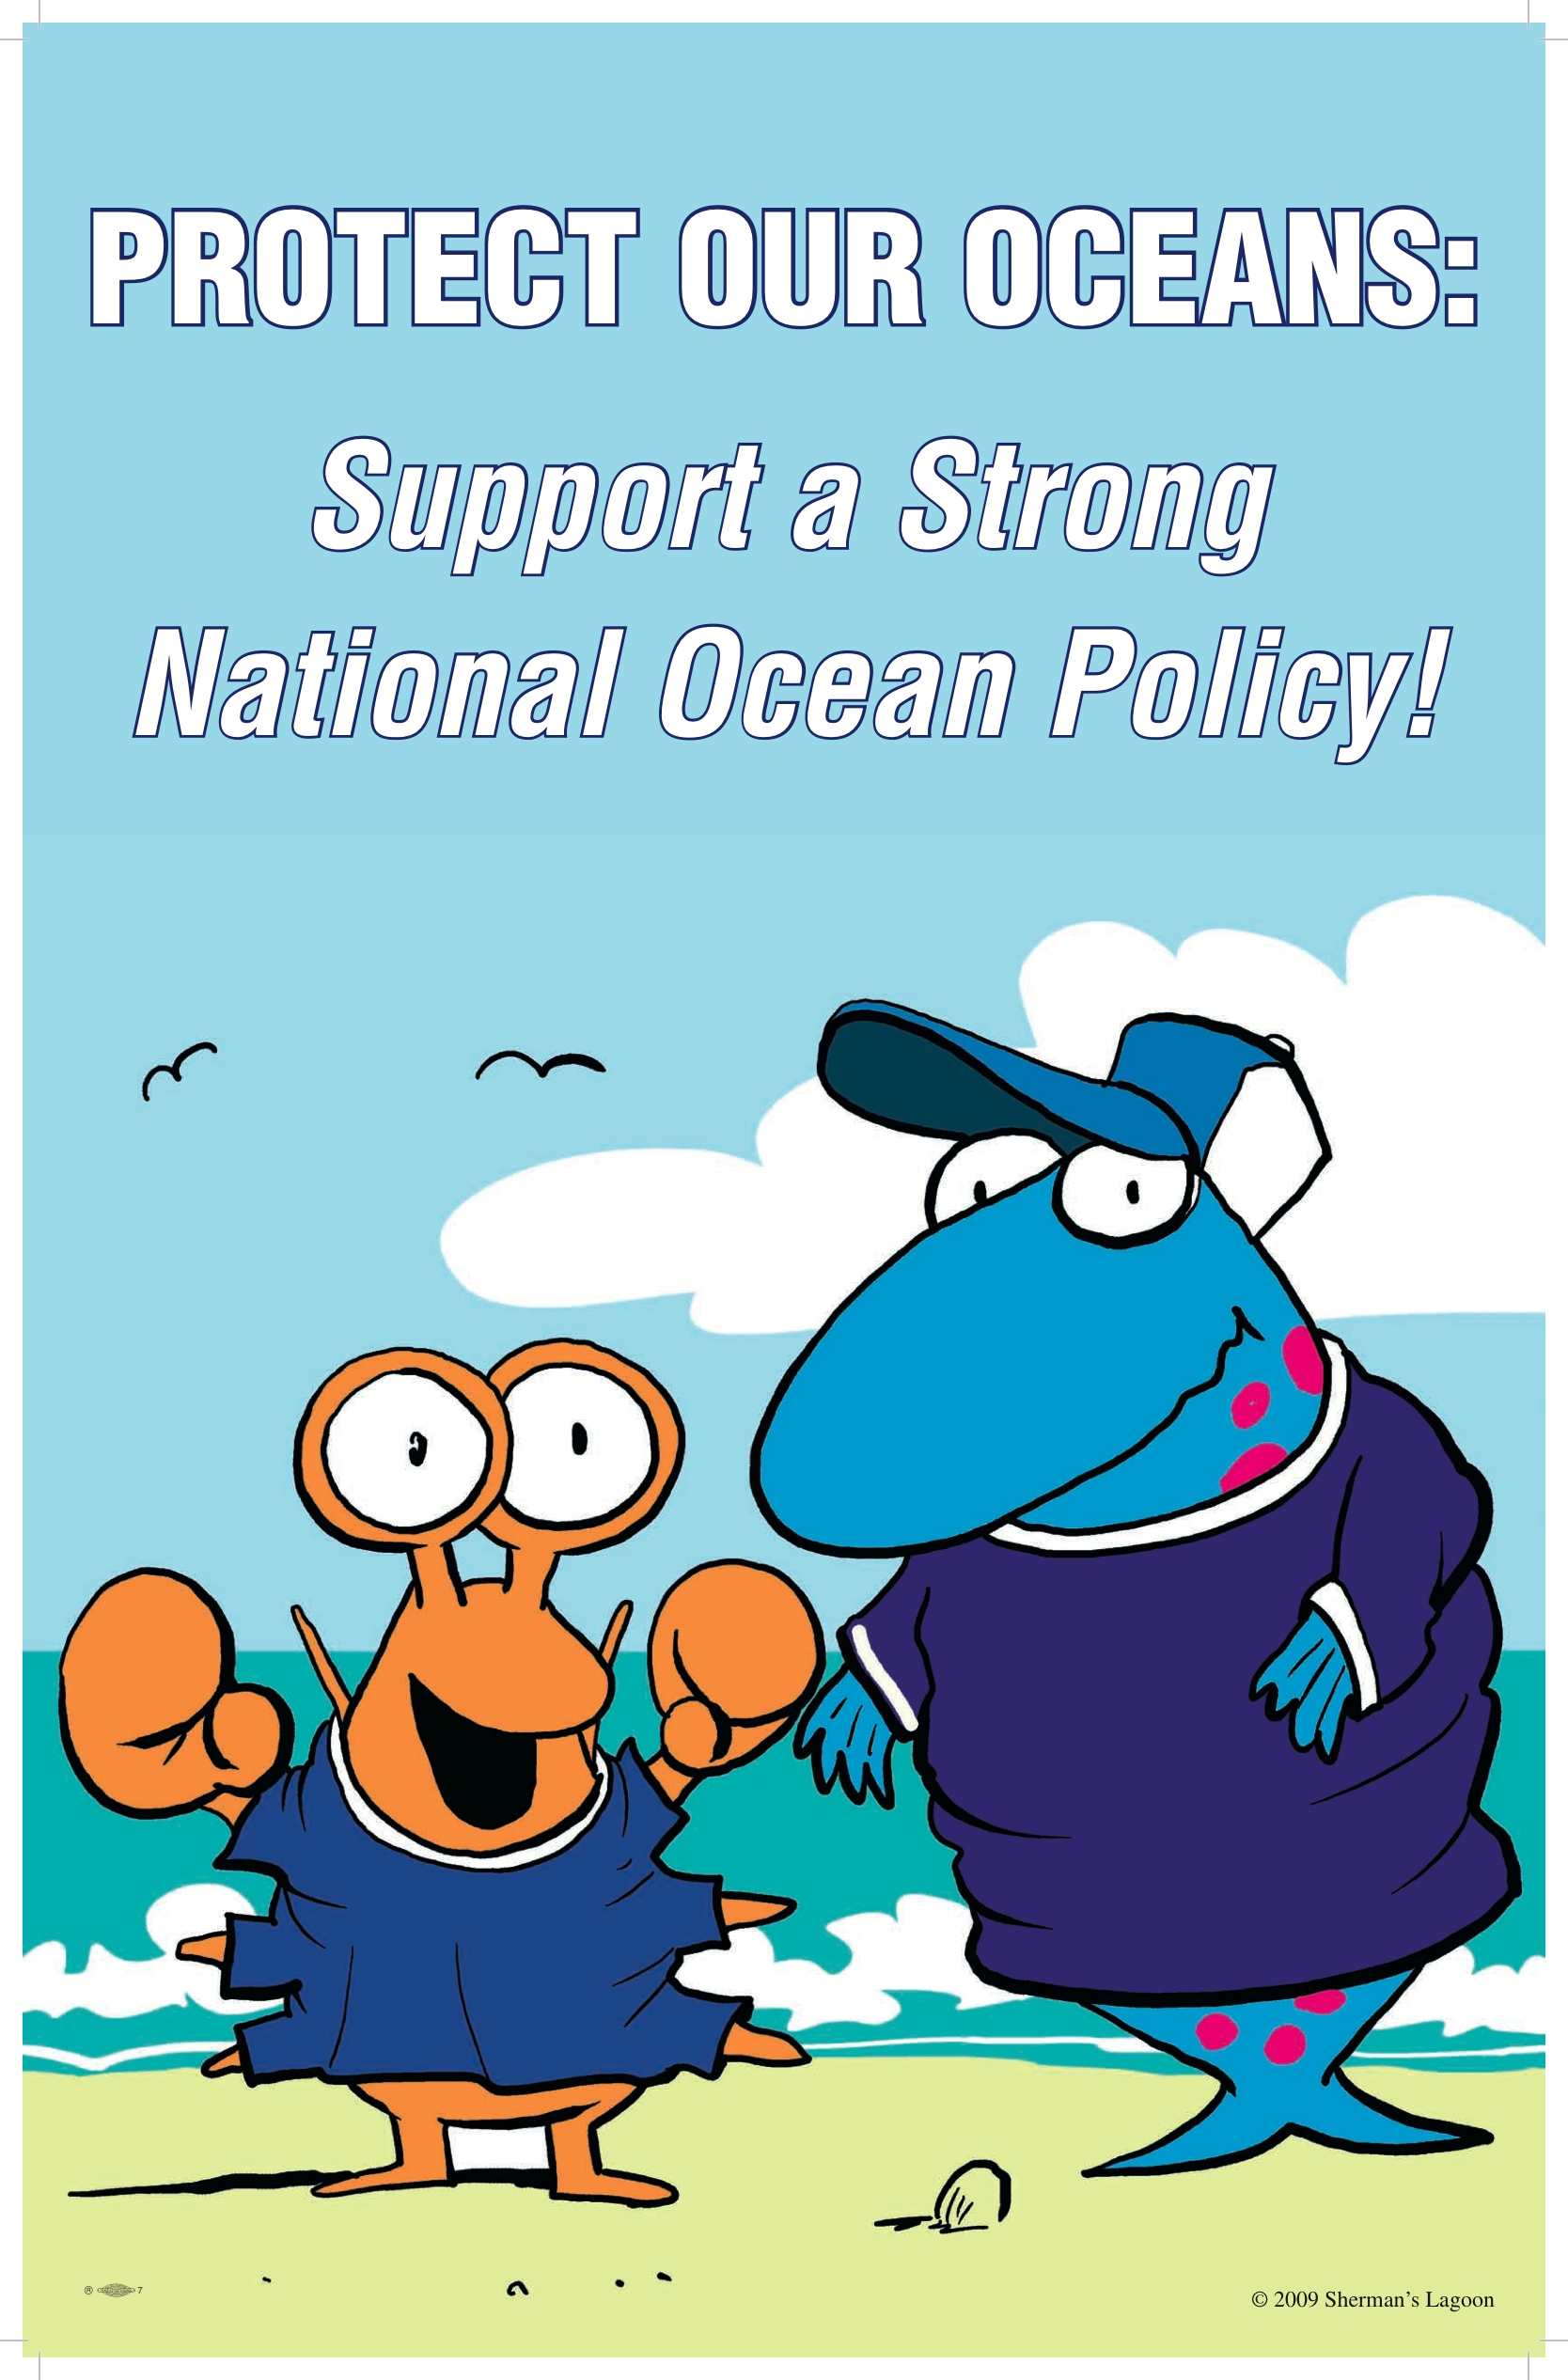 Protect Our Oceans Rally - Wear Blue sign